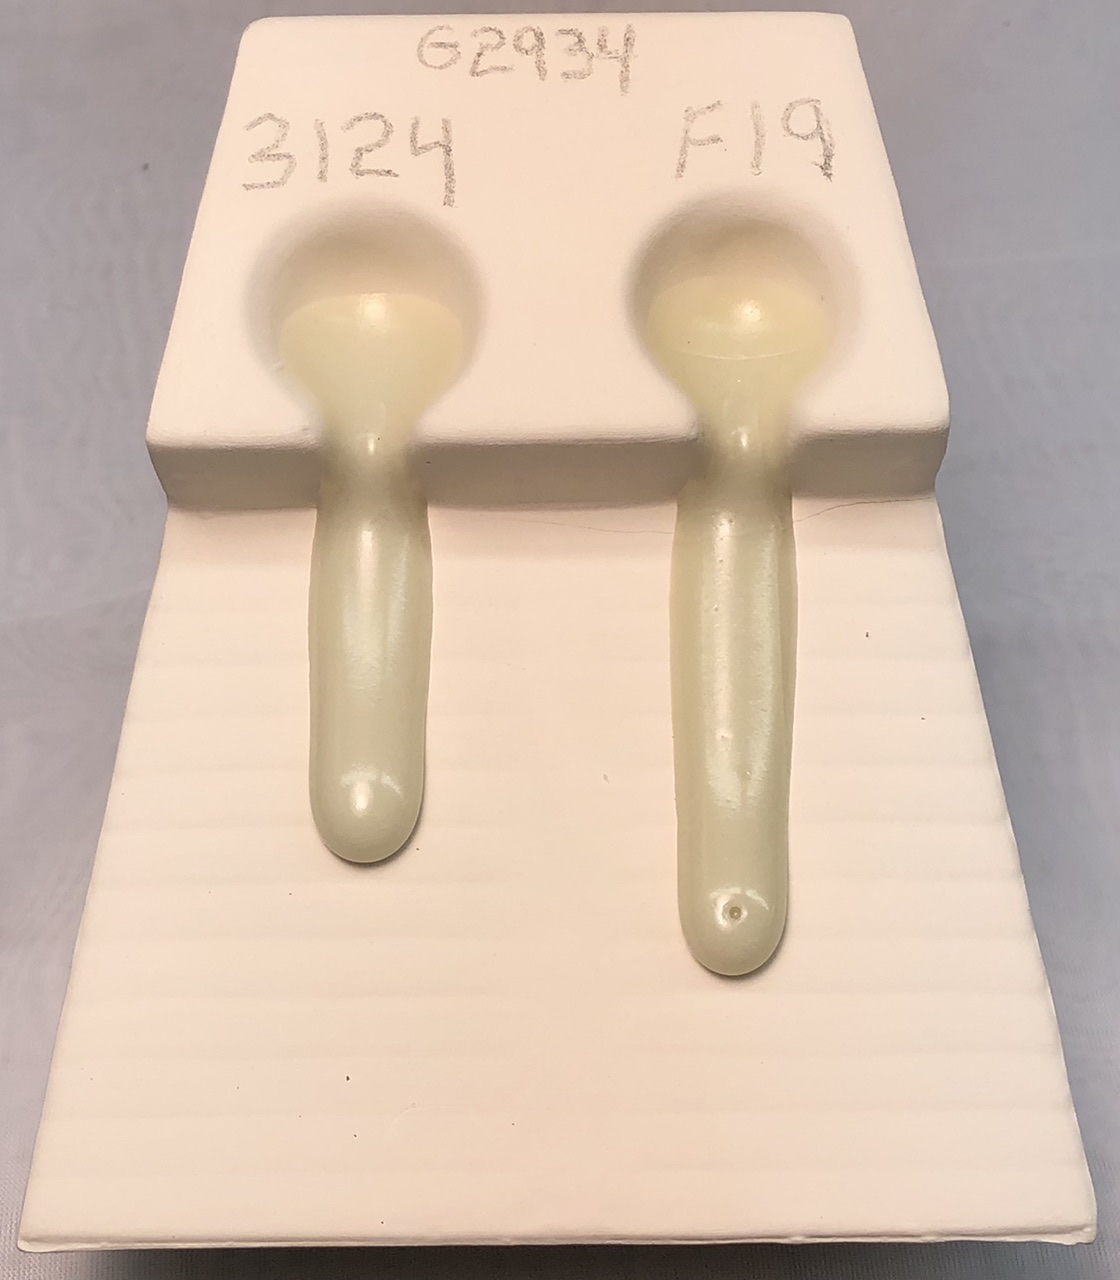 Melt fluidity tester comparing two versions of G2934